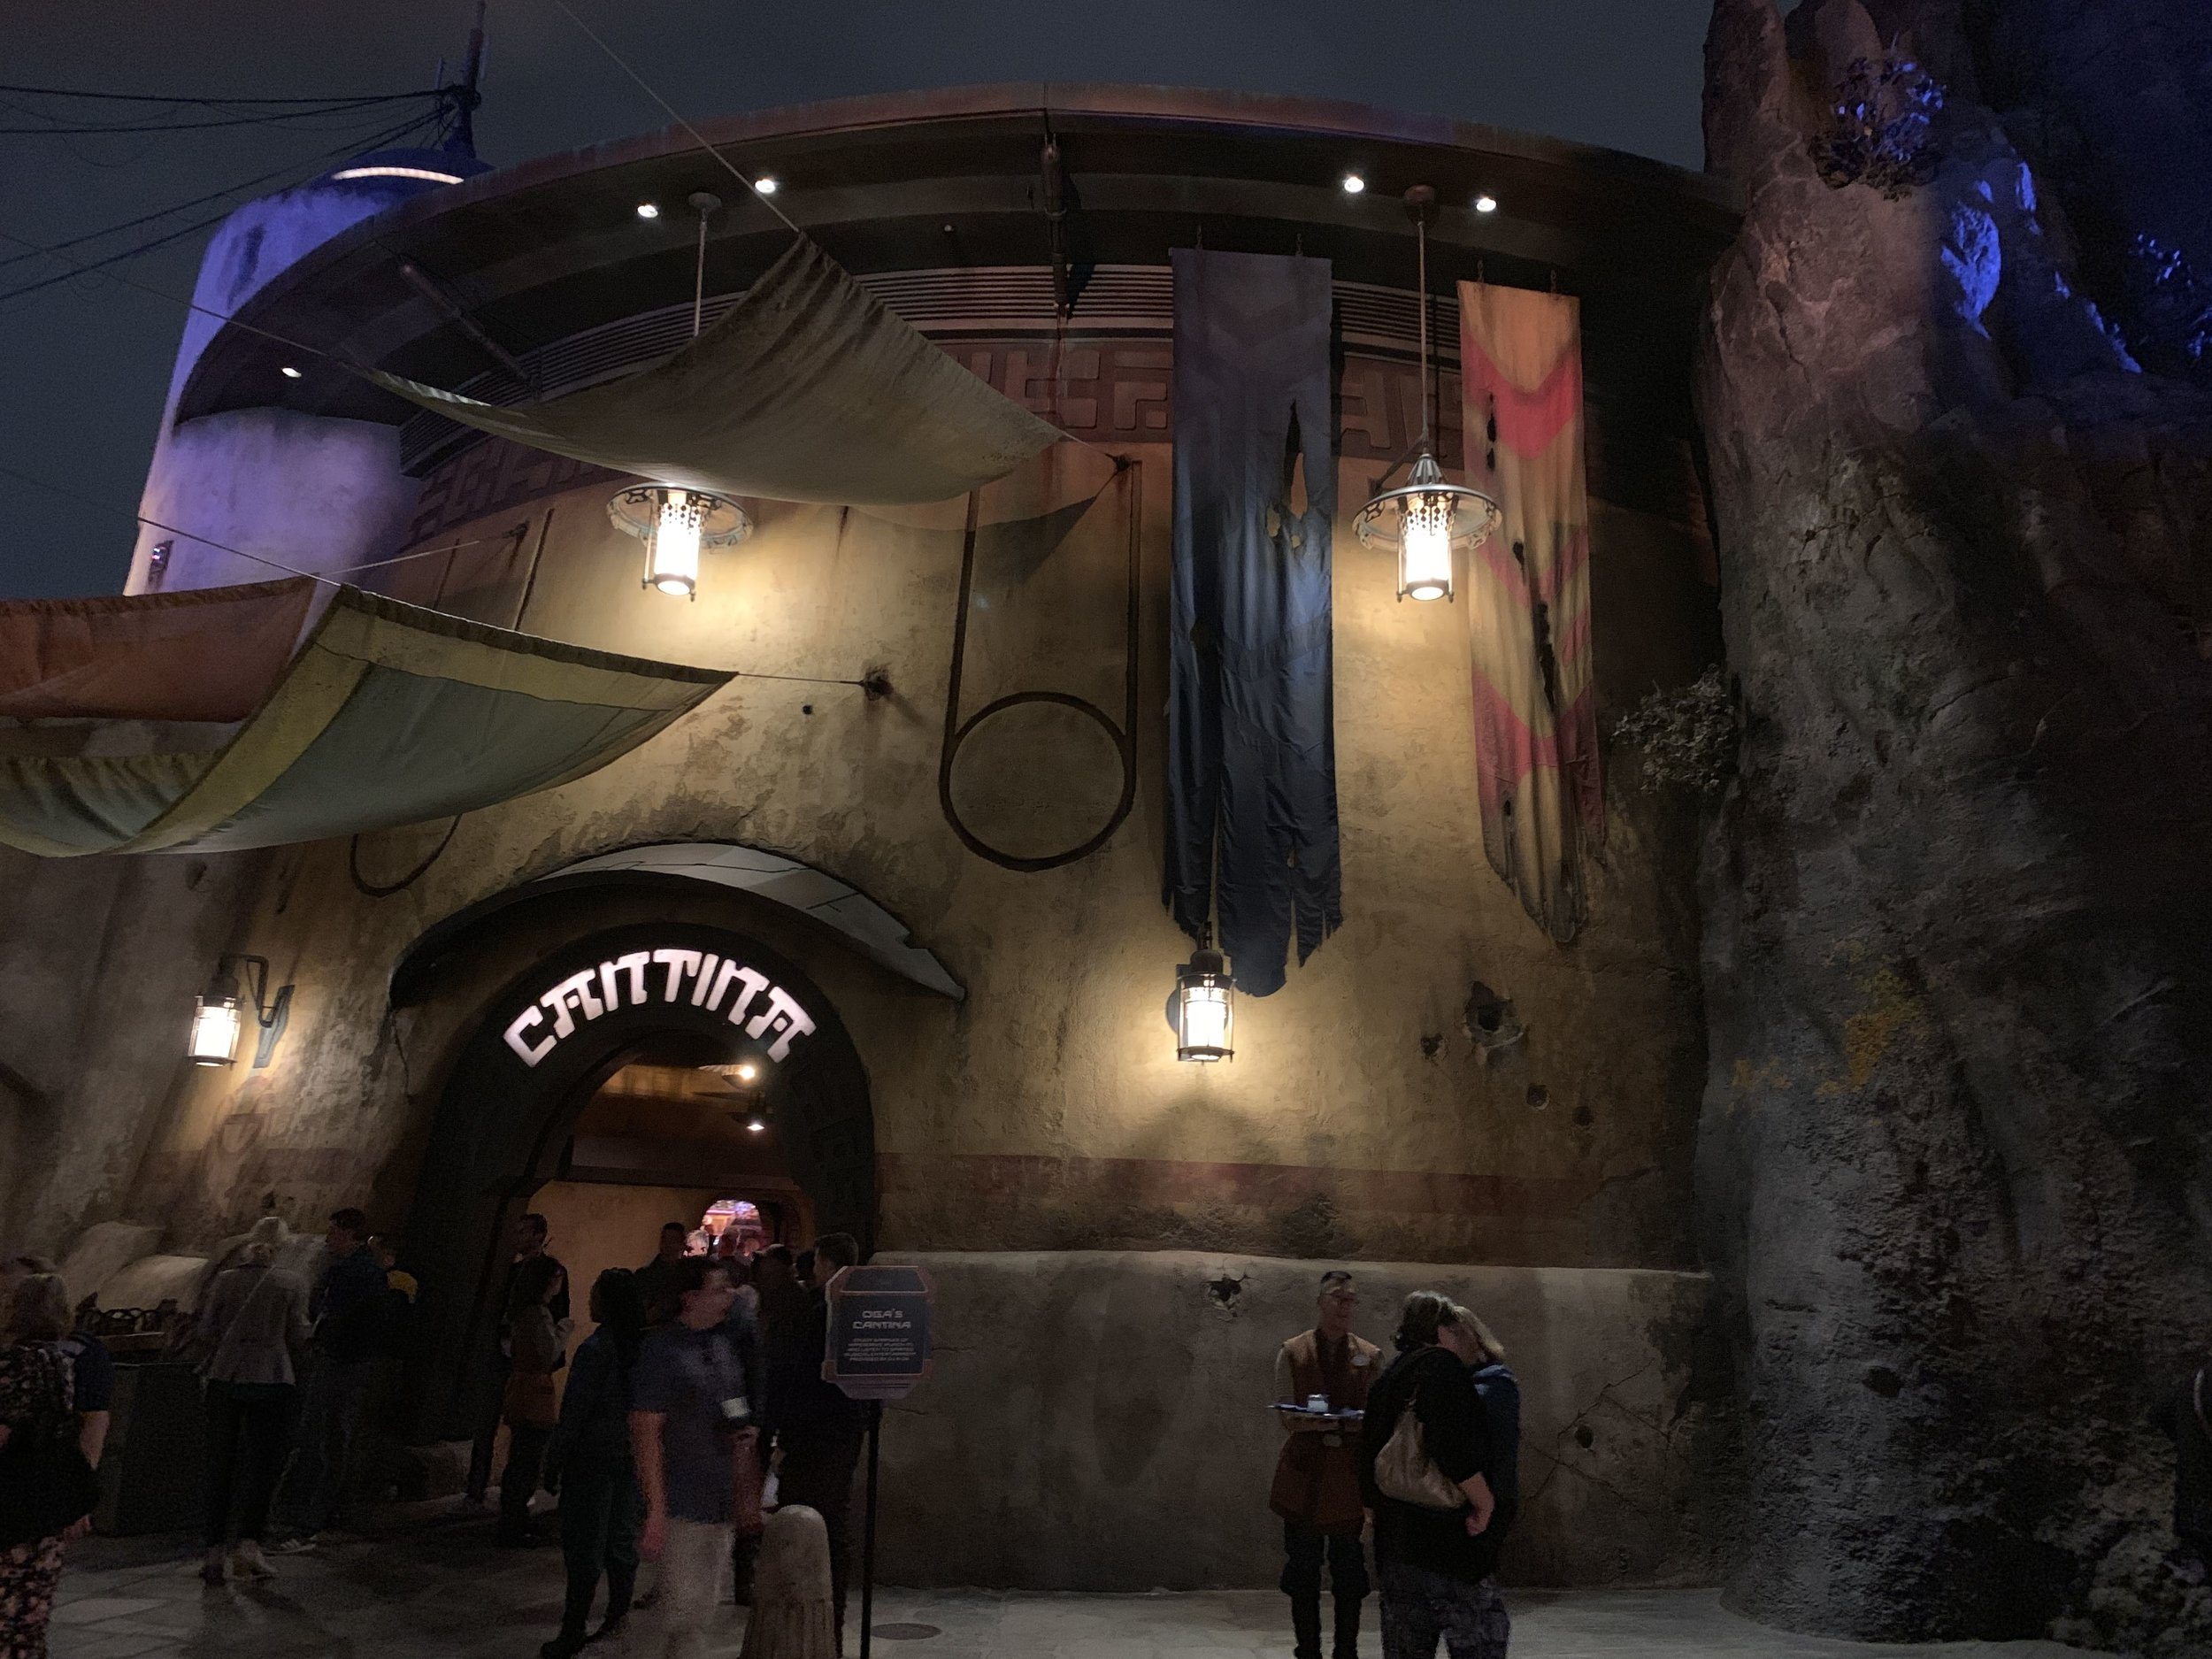 The entrance of Oga's Cantina at night